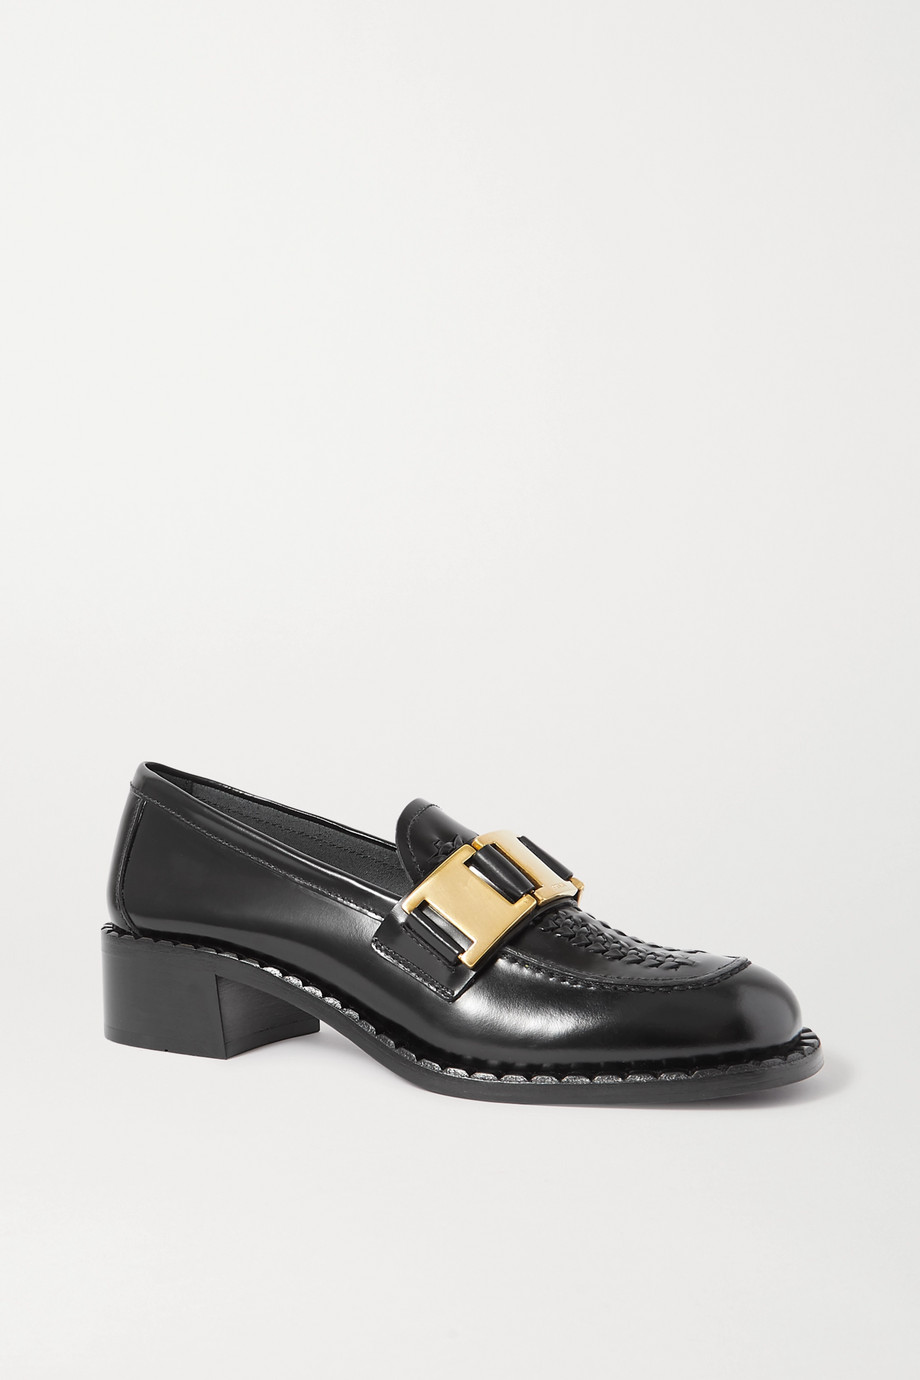 Prada 40 embellished woven glossed-leather loafers